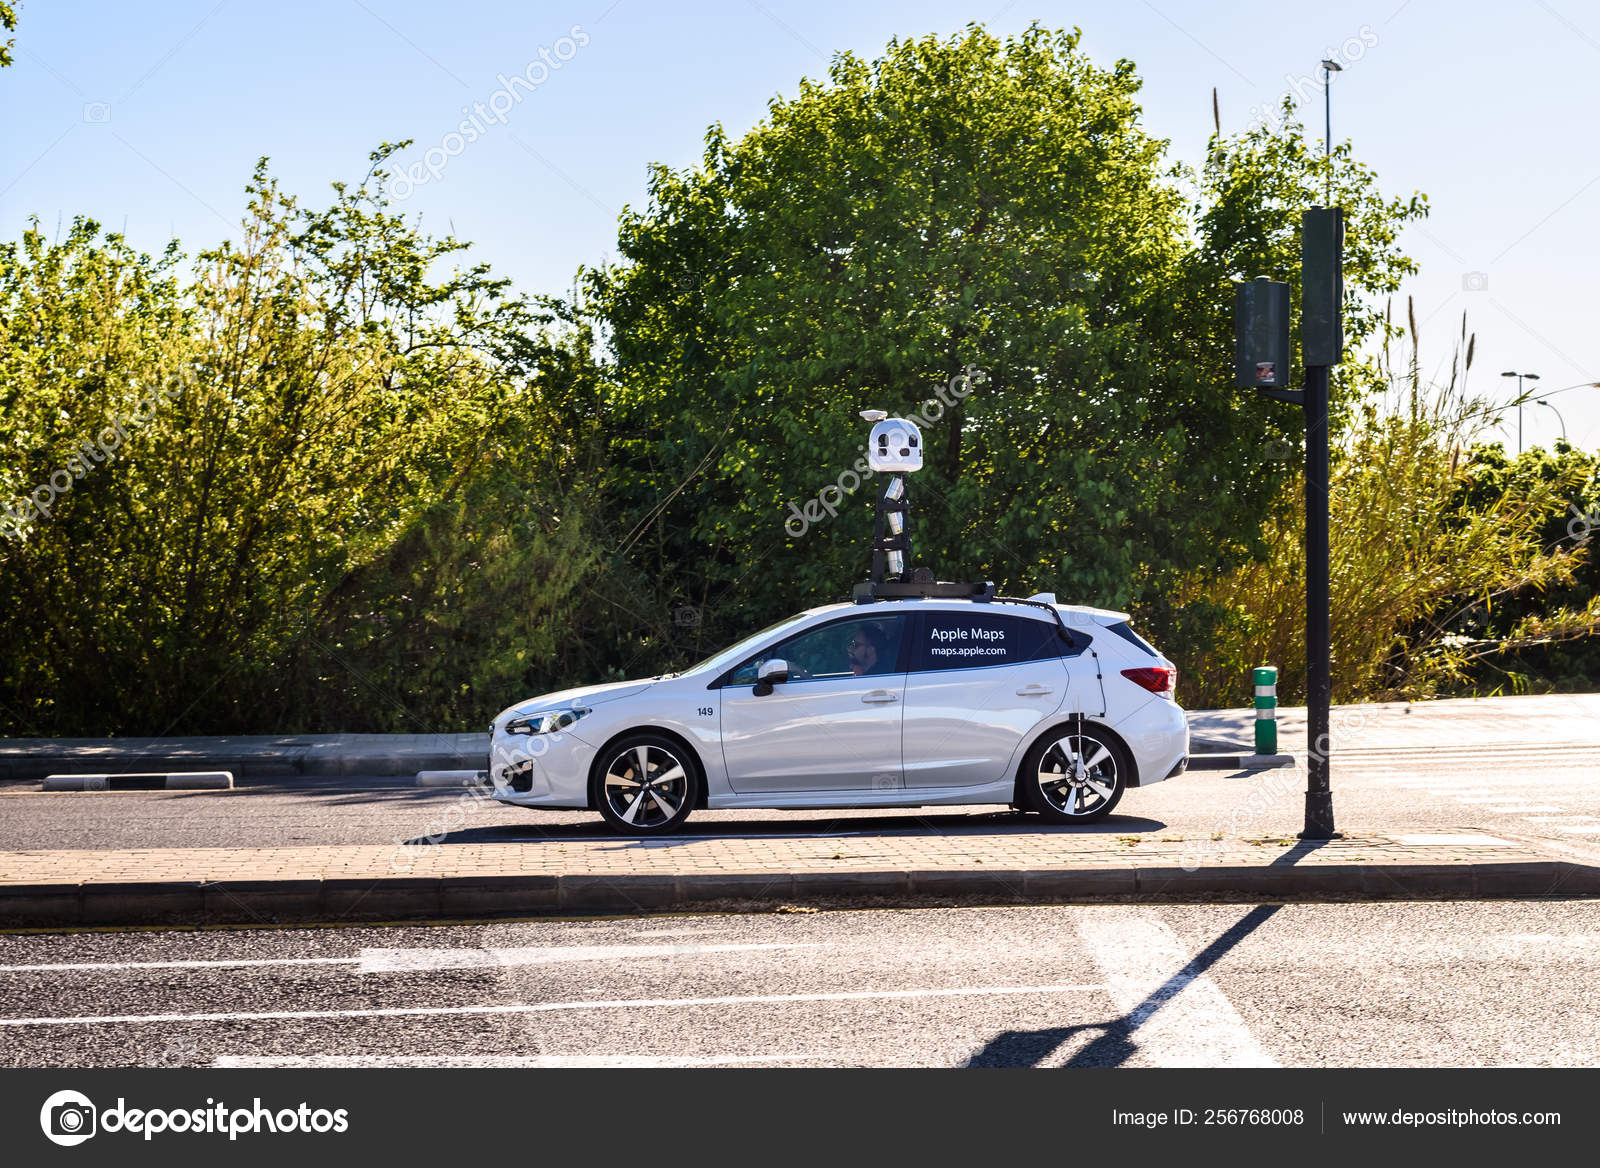 Valencia, Spain - April 9, 2019: Apple Maps car mapping